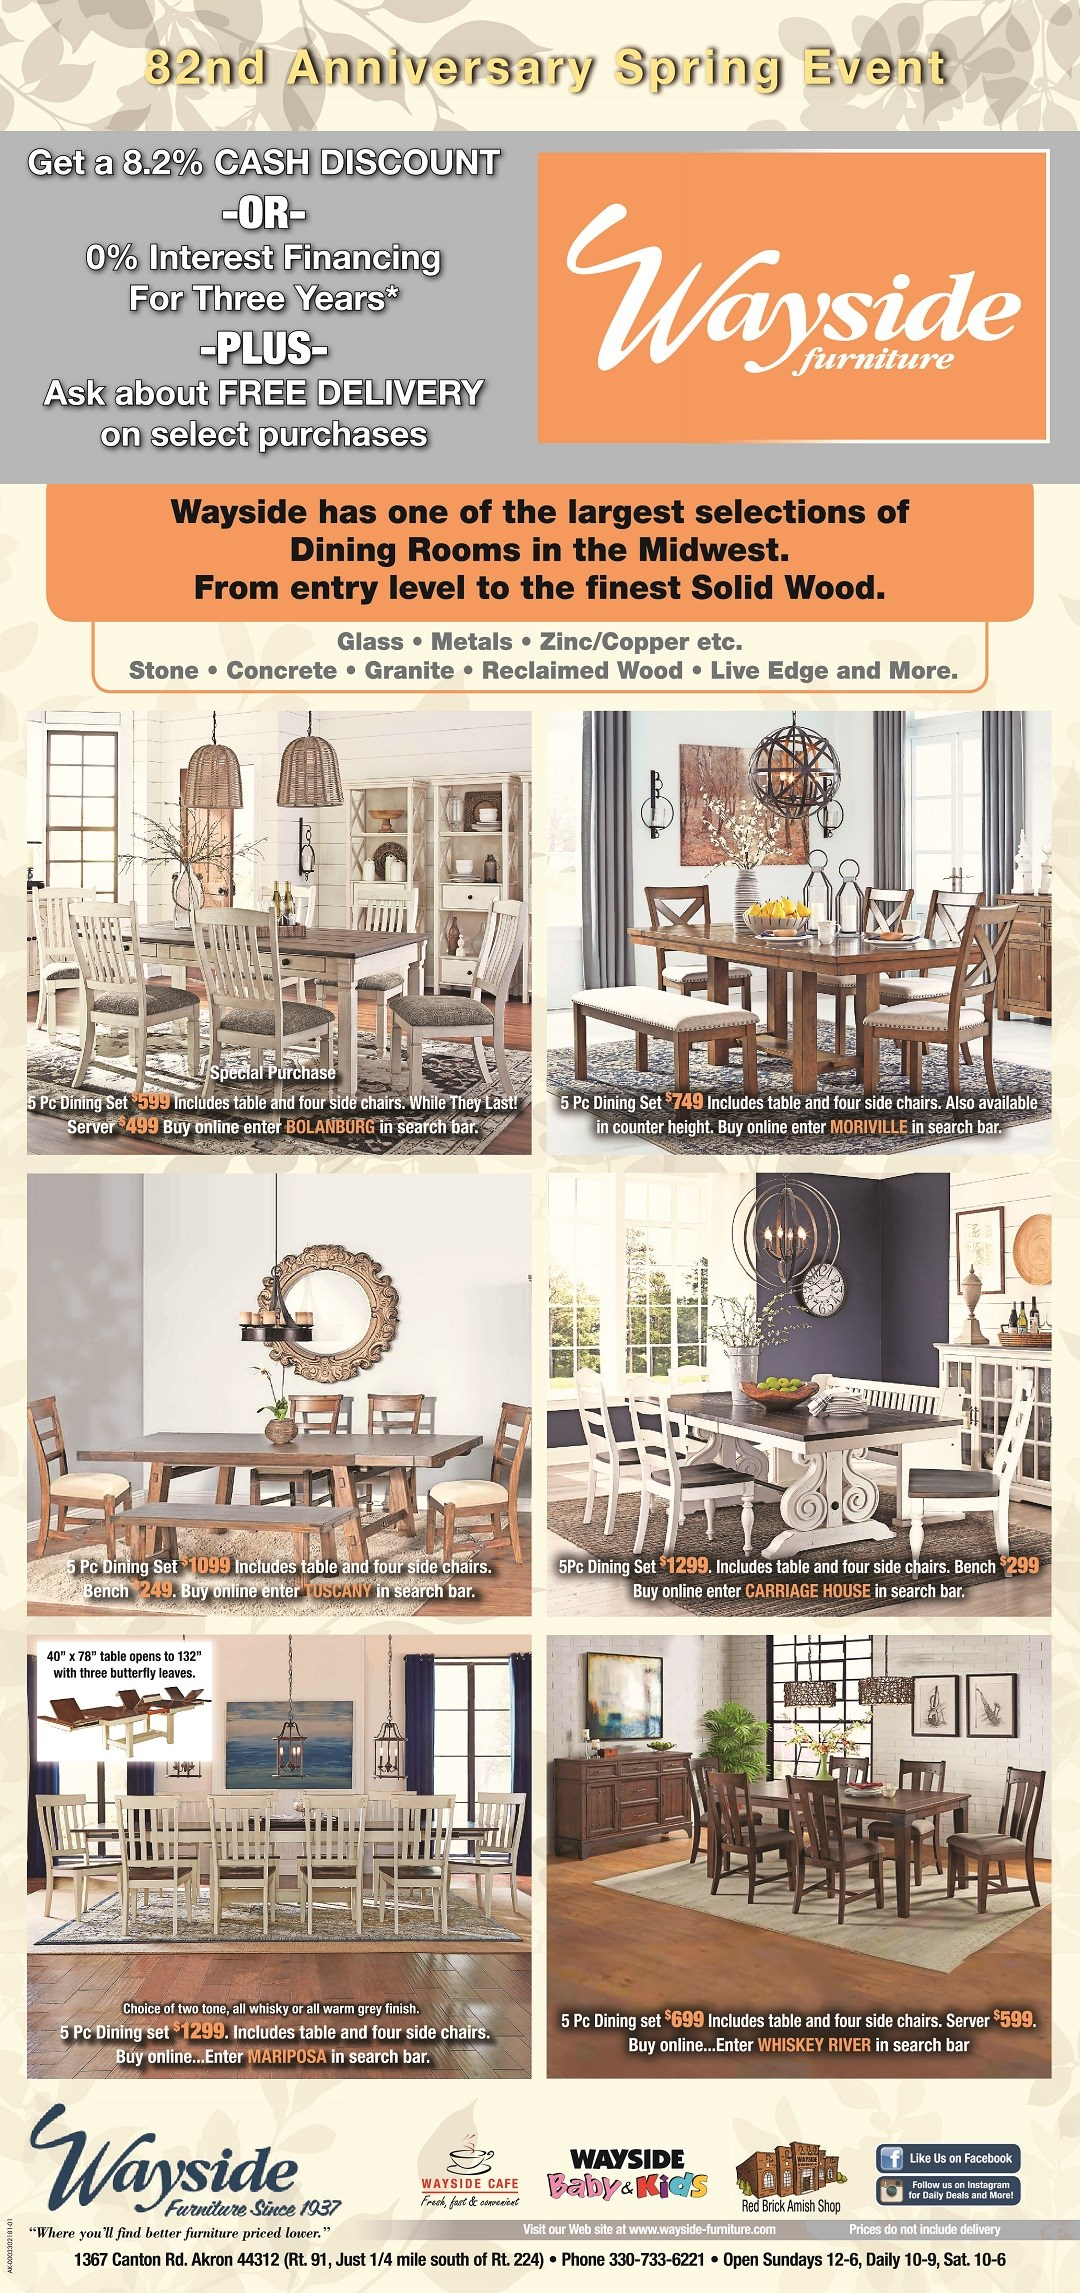 dining table and chairs, dinettes, stools